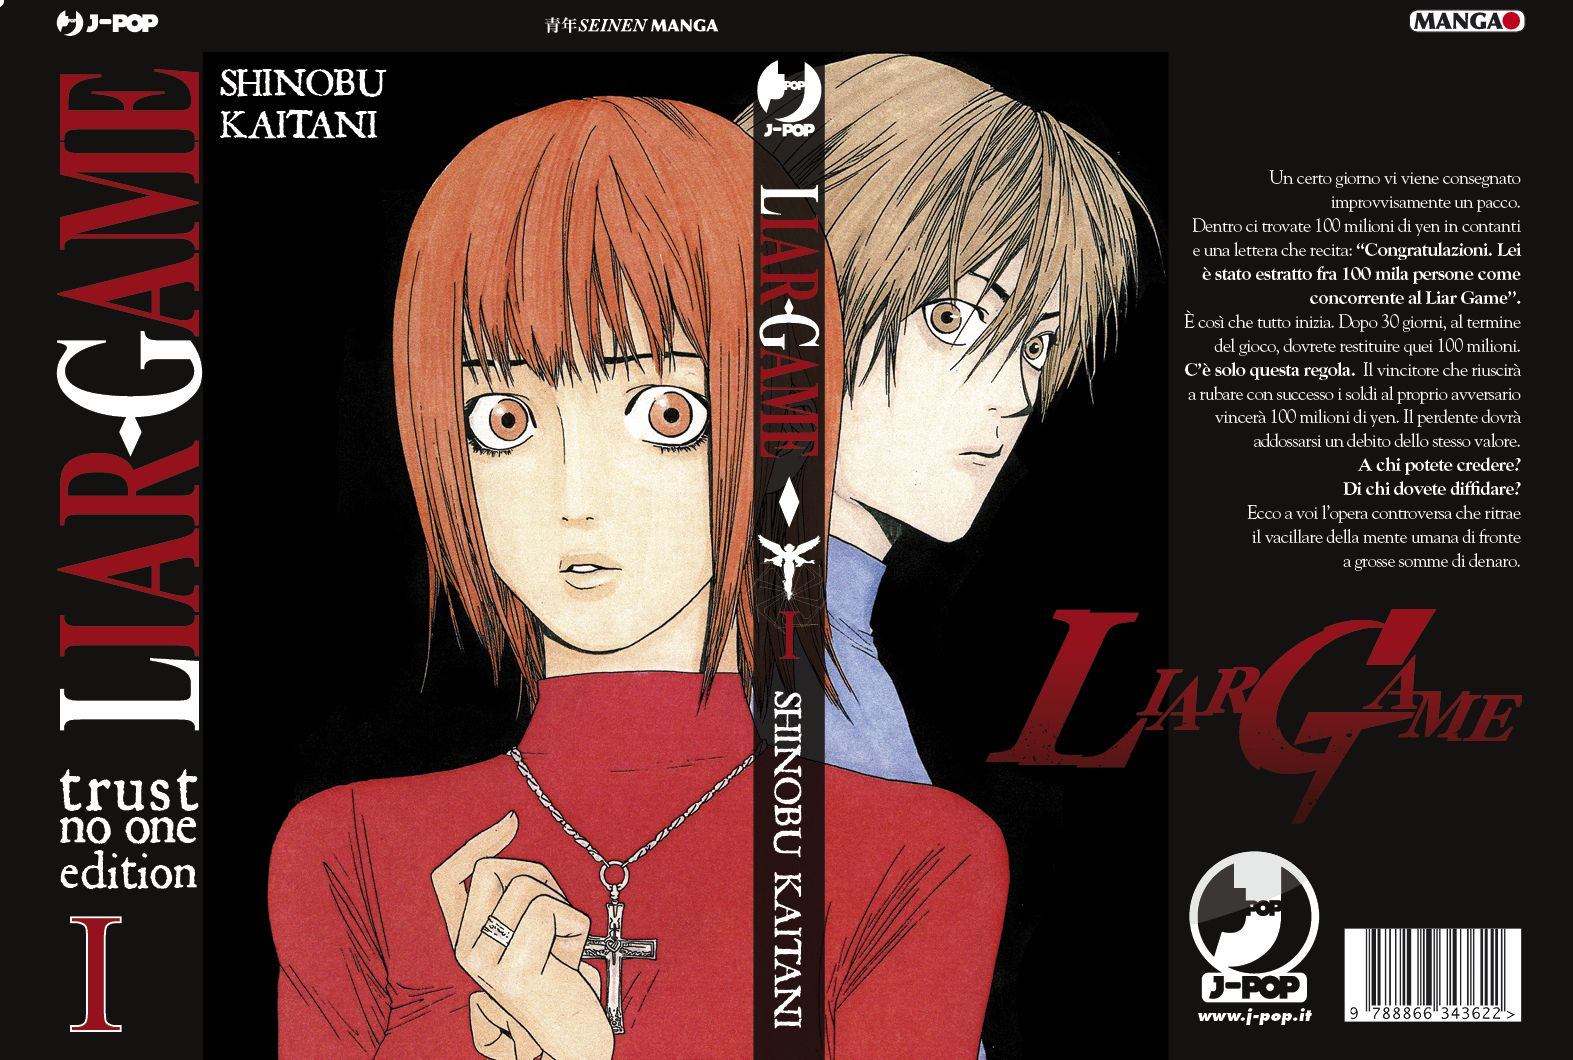 Liar game limited variant cover j-pop